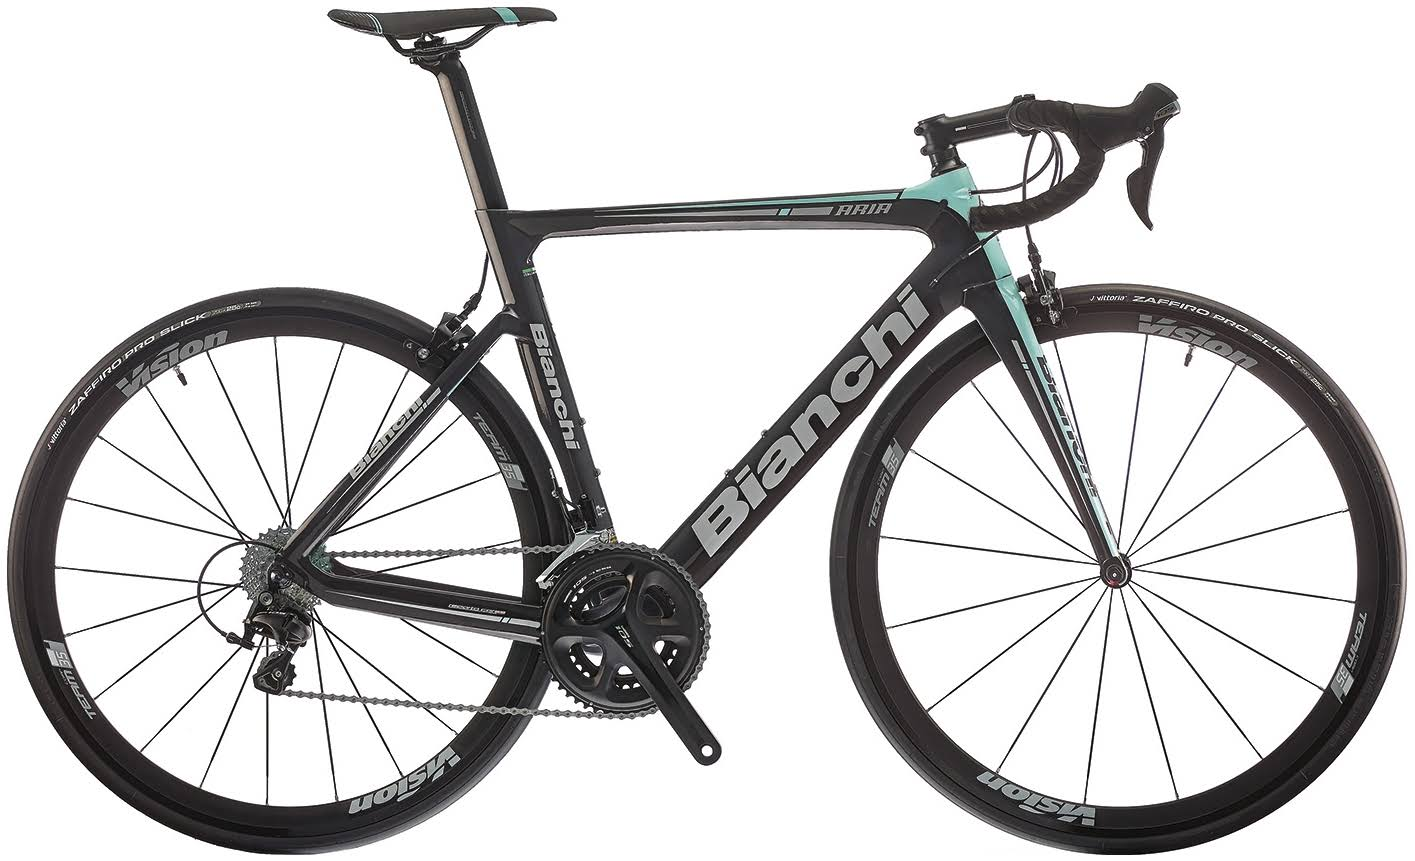 Bianchi Aria 105 2018 Carbon Road Bike Black